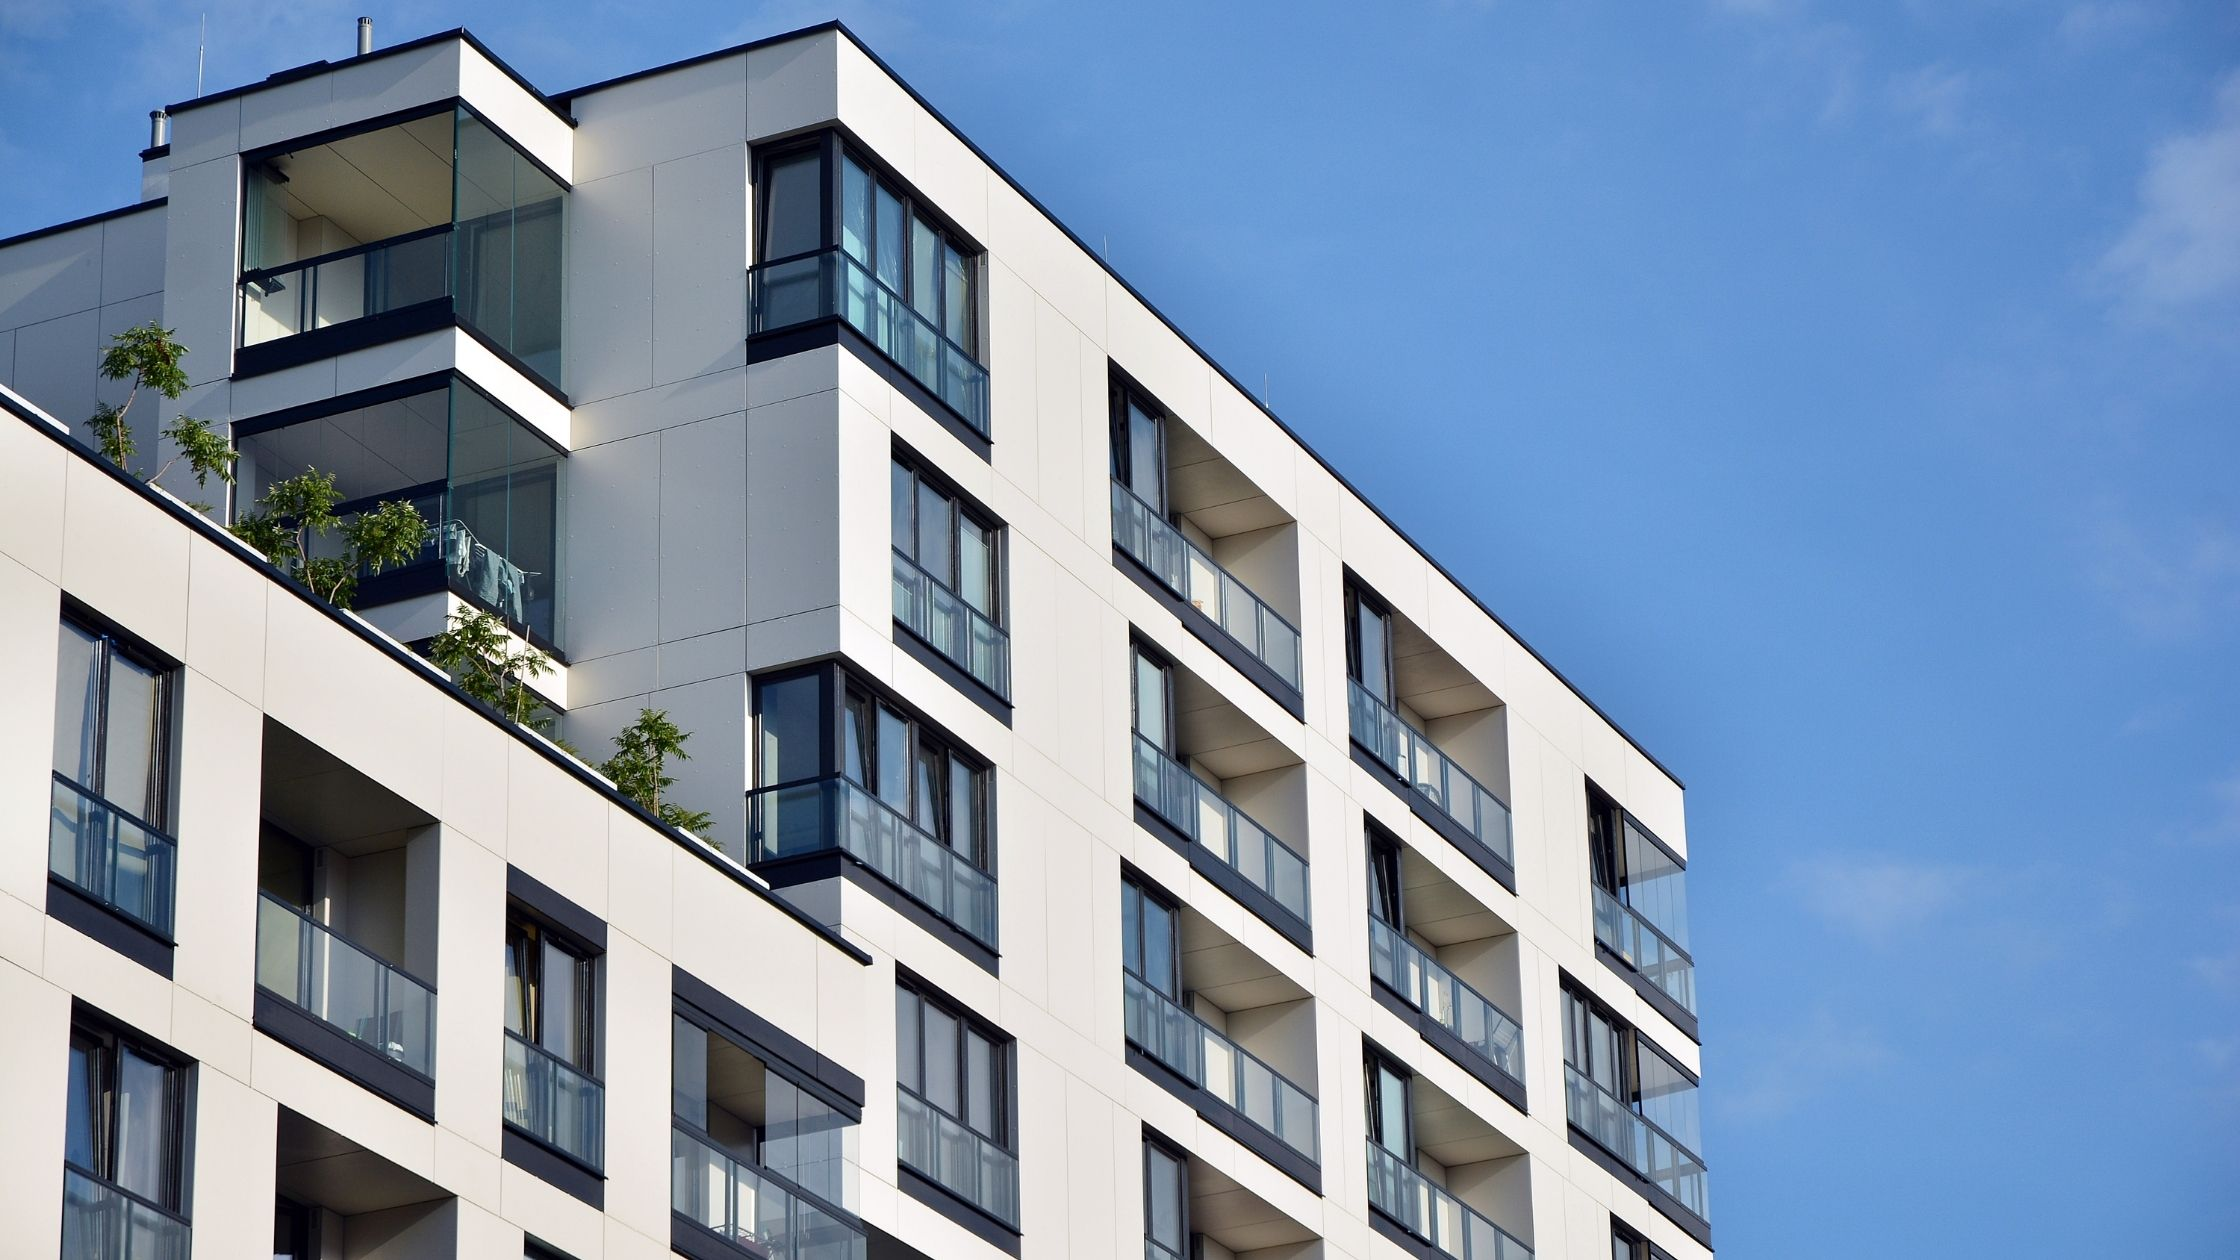 Factors To Consider Before Buying a Condo